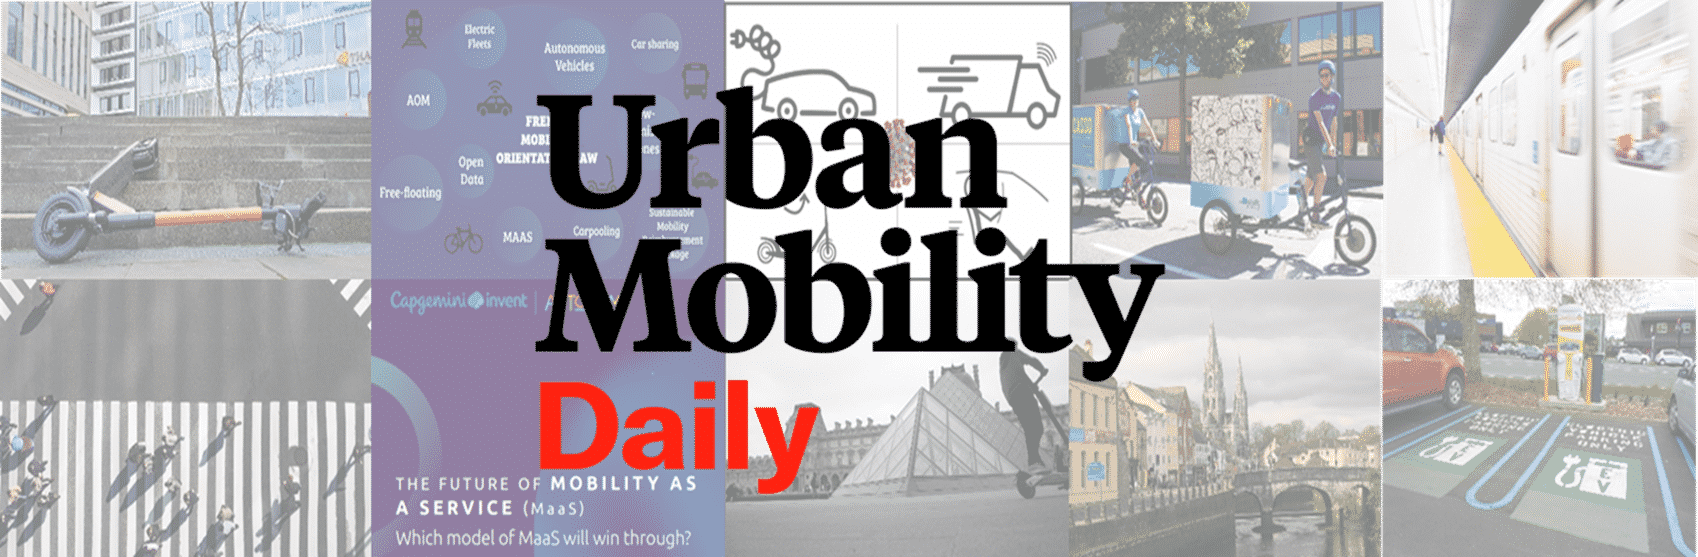 Top 10 Urban Mobility daily articles 2020